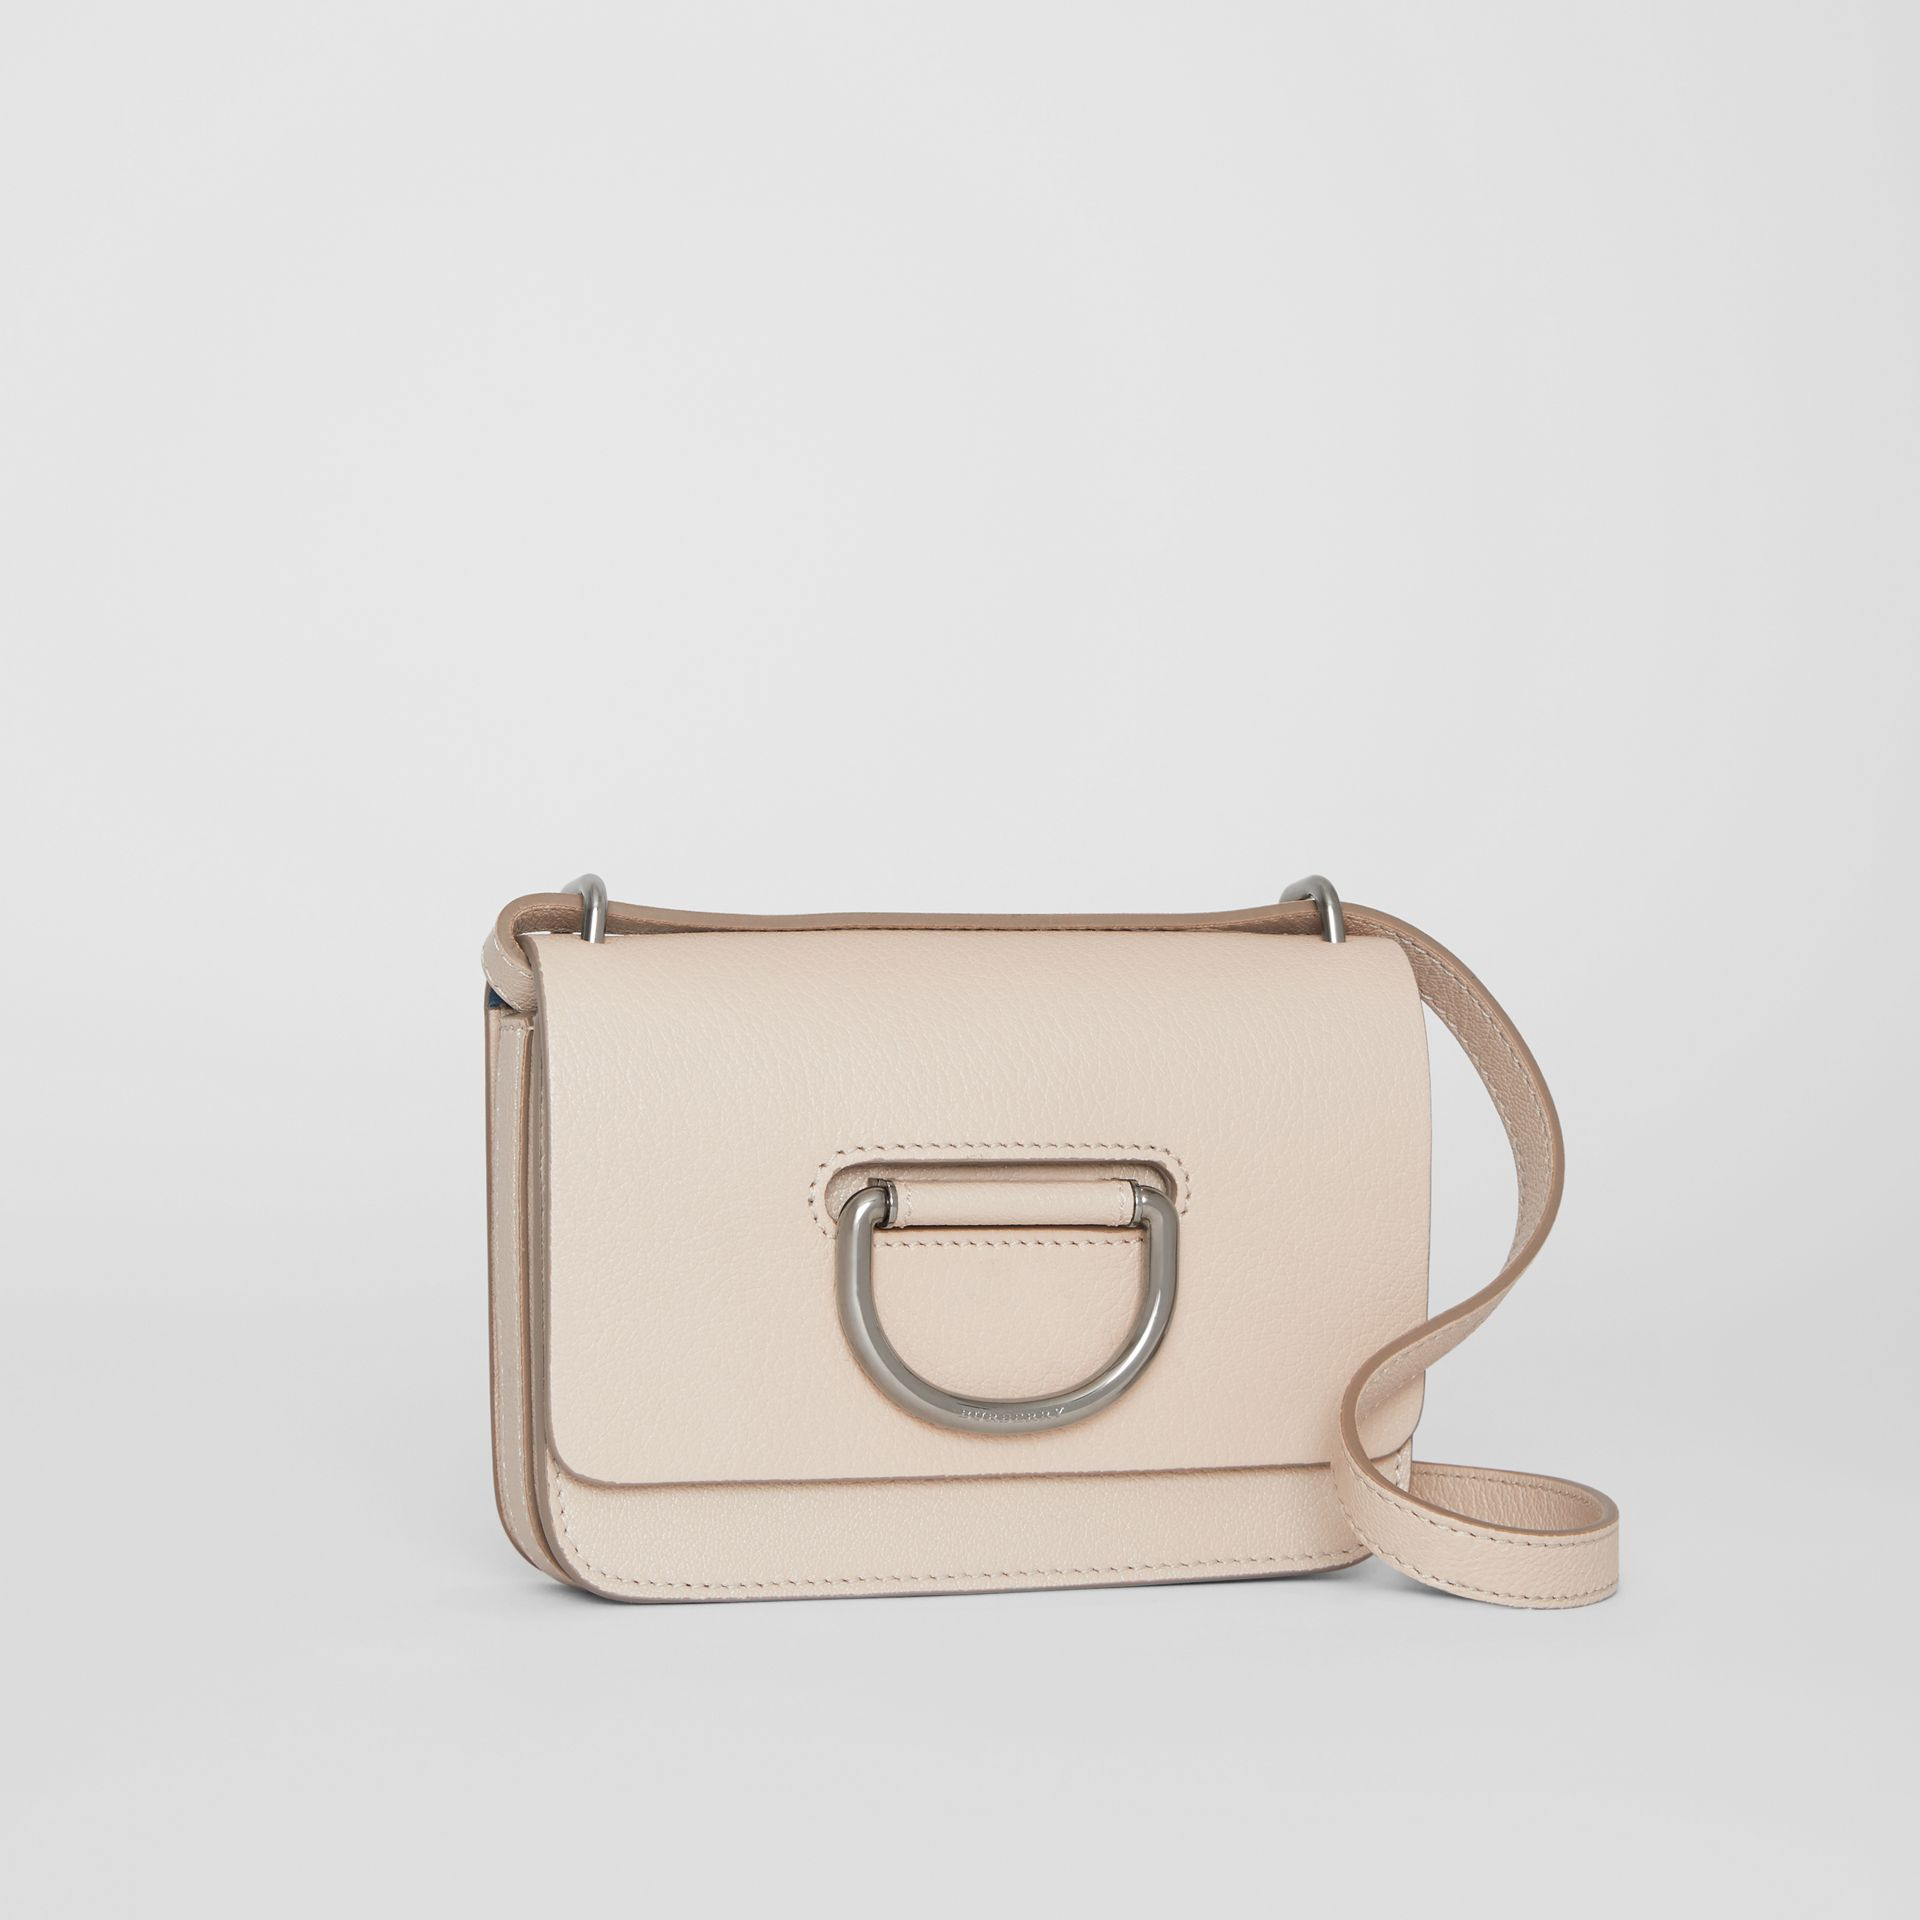 Mini sac The D-ring en cuir (Stone) - Femme | Burberry - photo de la galerie 6